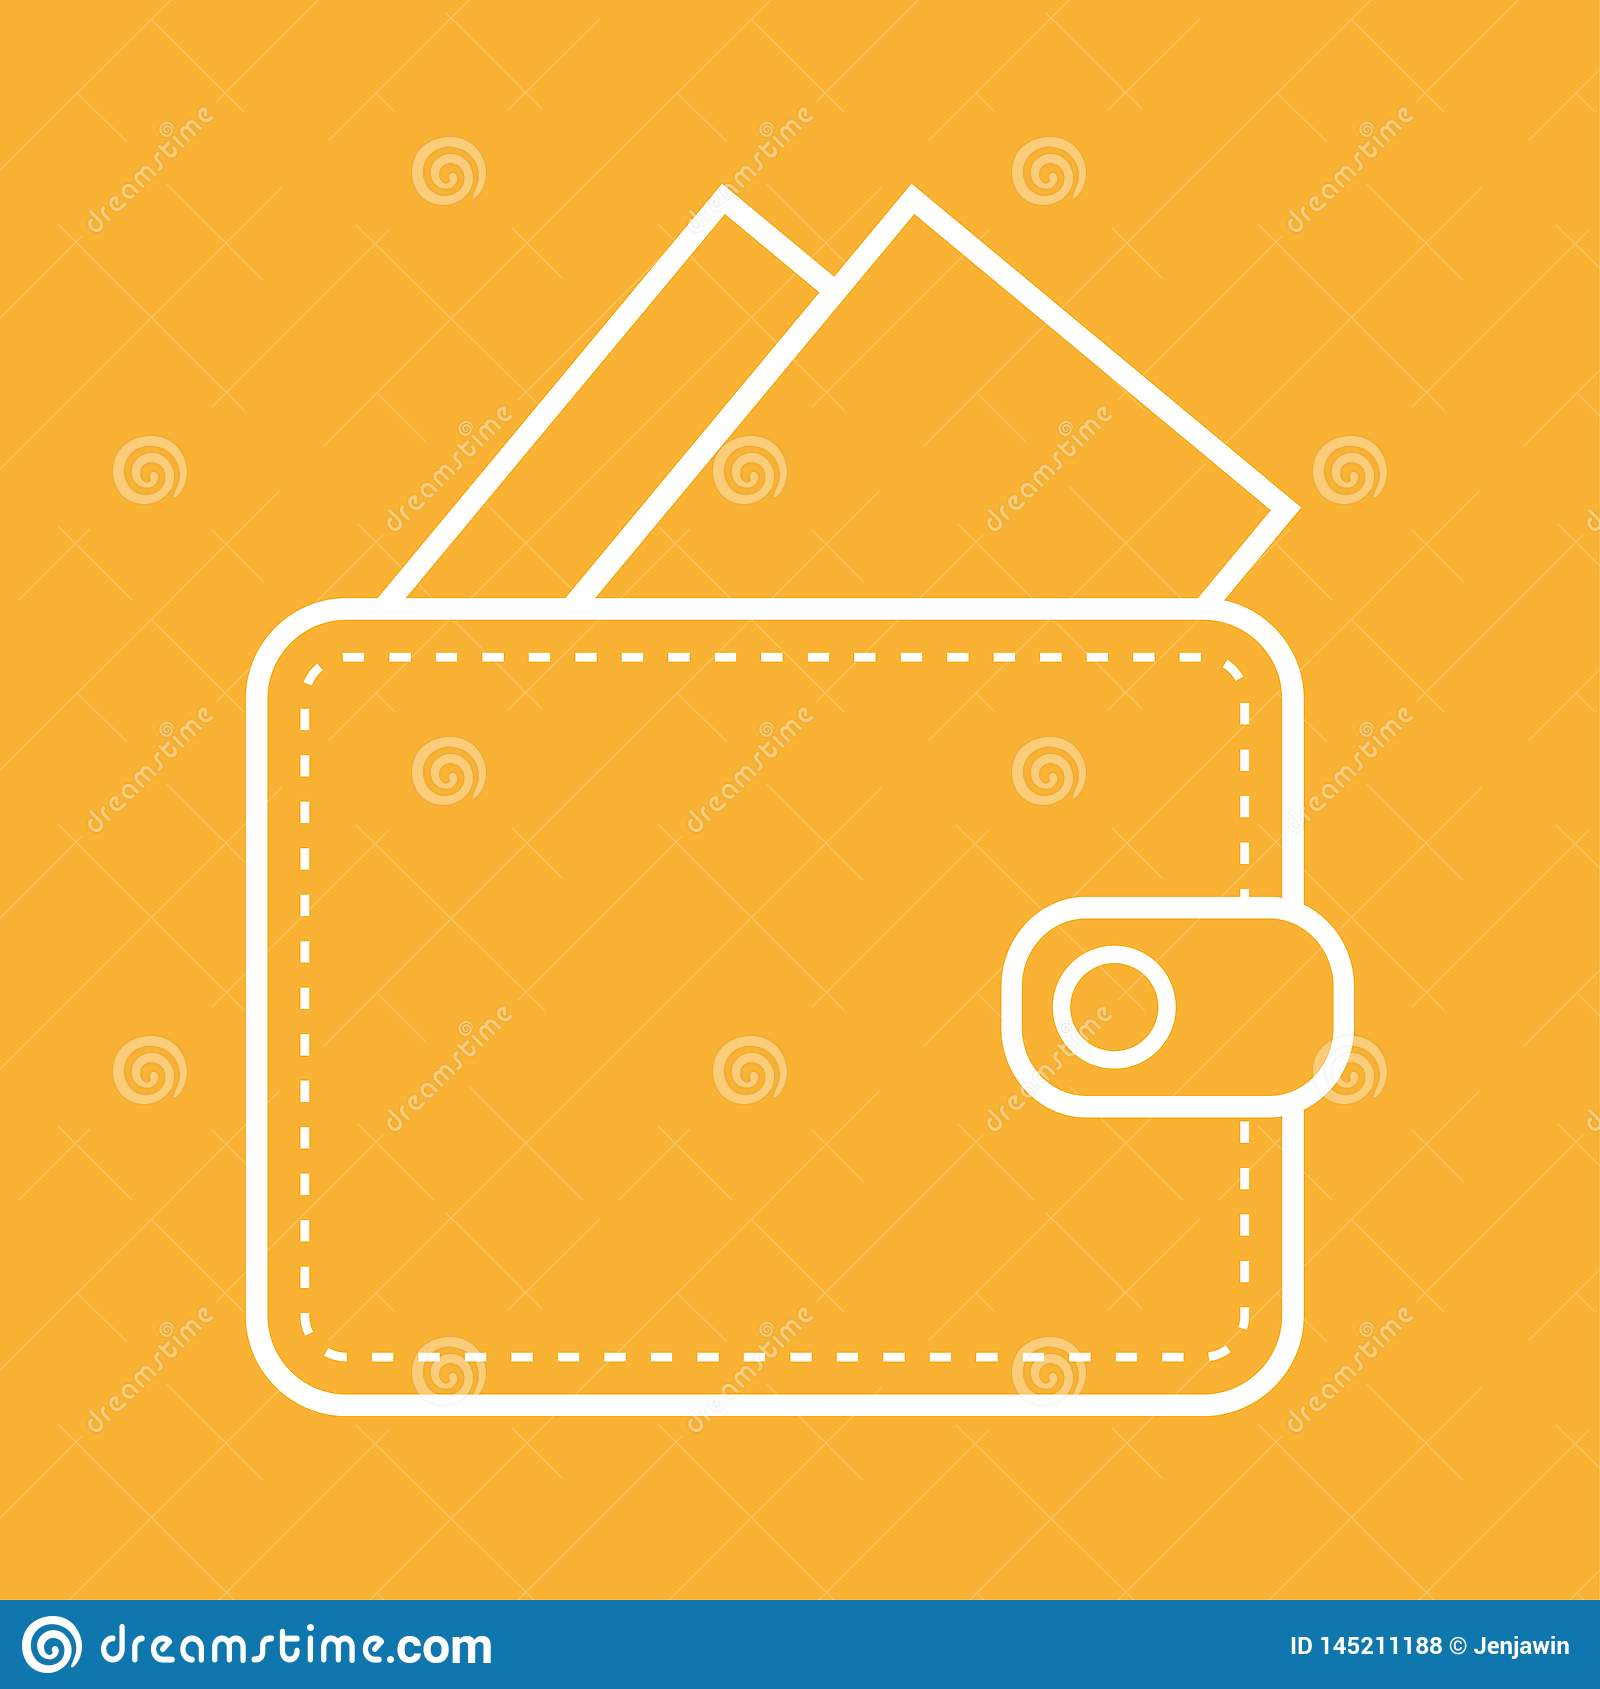 White color Wallet outline with money icon vector eps10. Wallet oultine with card or banknoutes on orange background